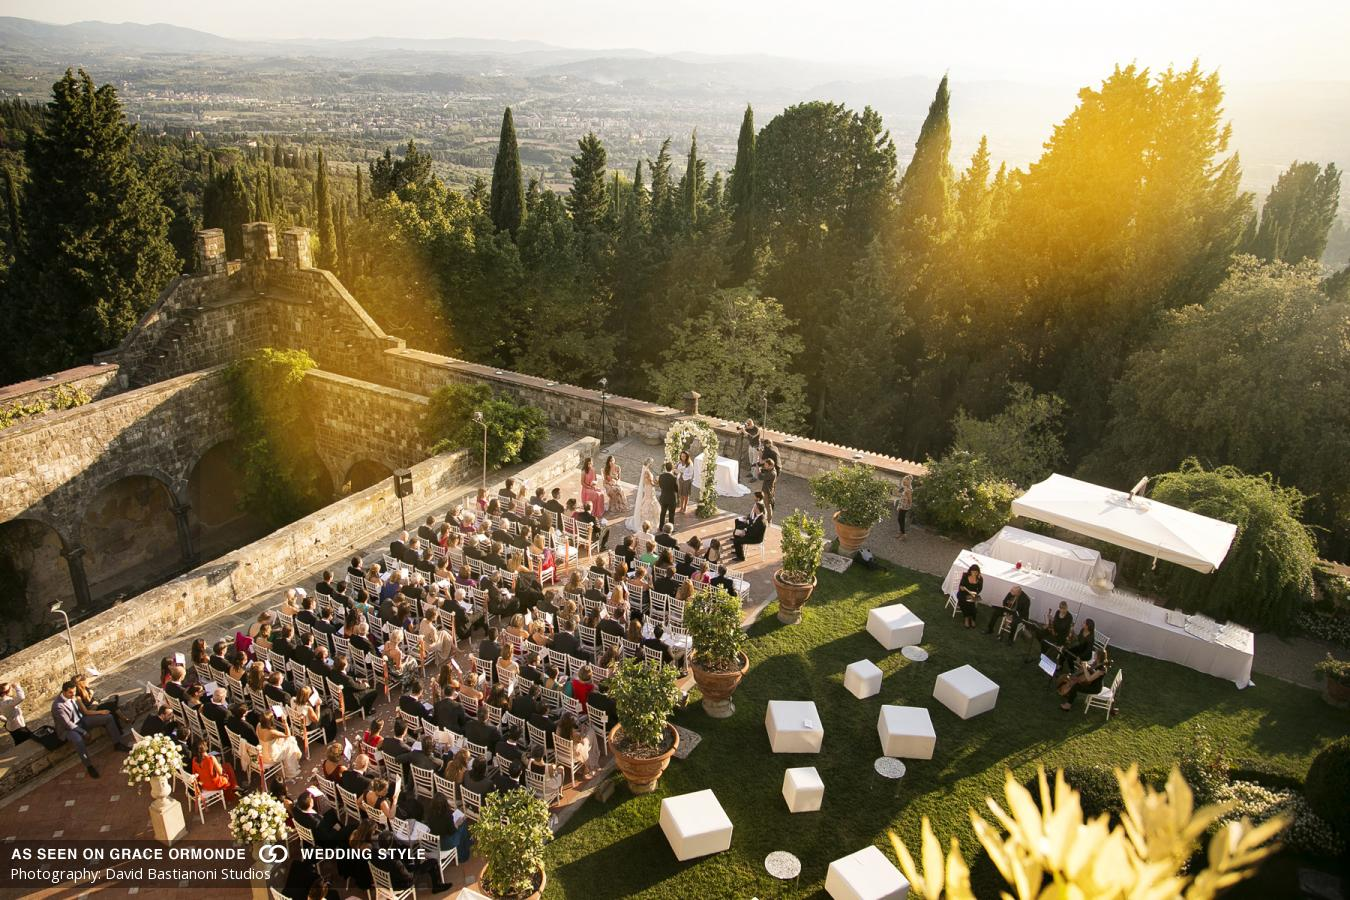 david-bastianoni-wedding-2015-05_0 :: Grace Ormonde :: Luxury wedding photography - 1 :: david-bastianoni-wedding-2015-05_0